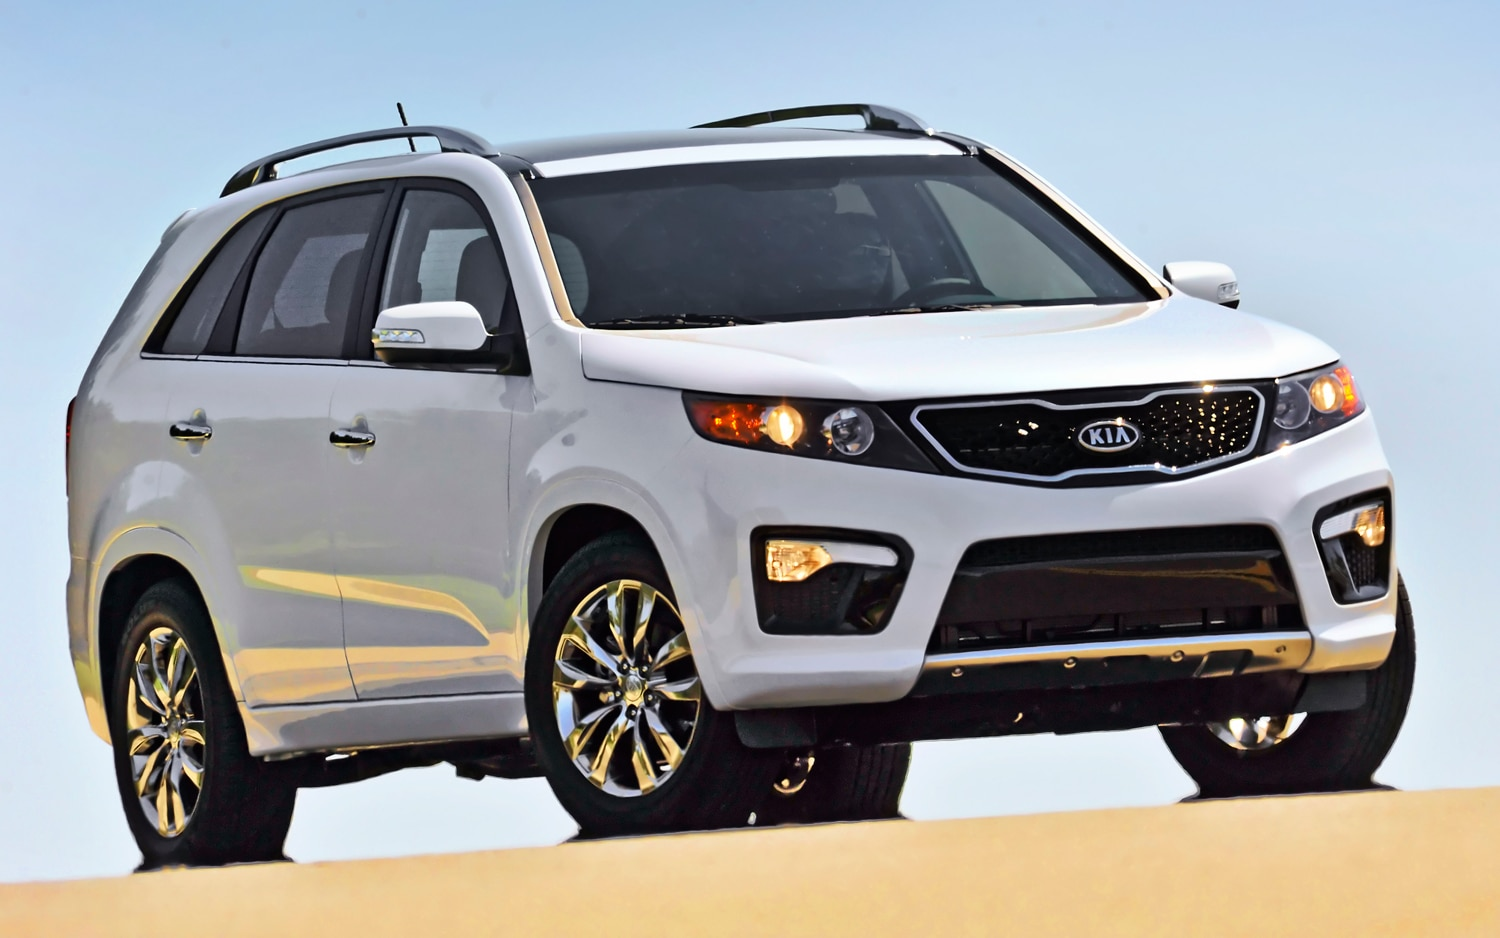 2011 Kia Sorento SX AWD Front Right View2